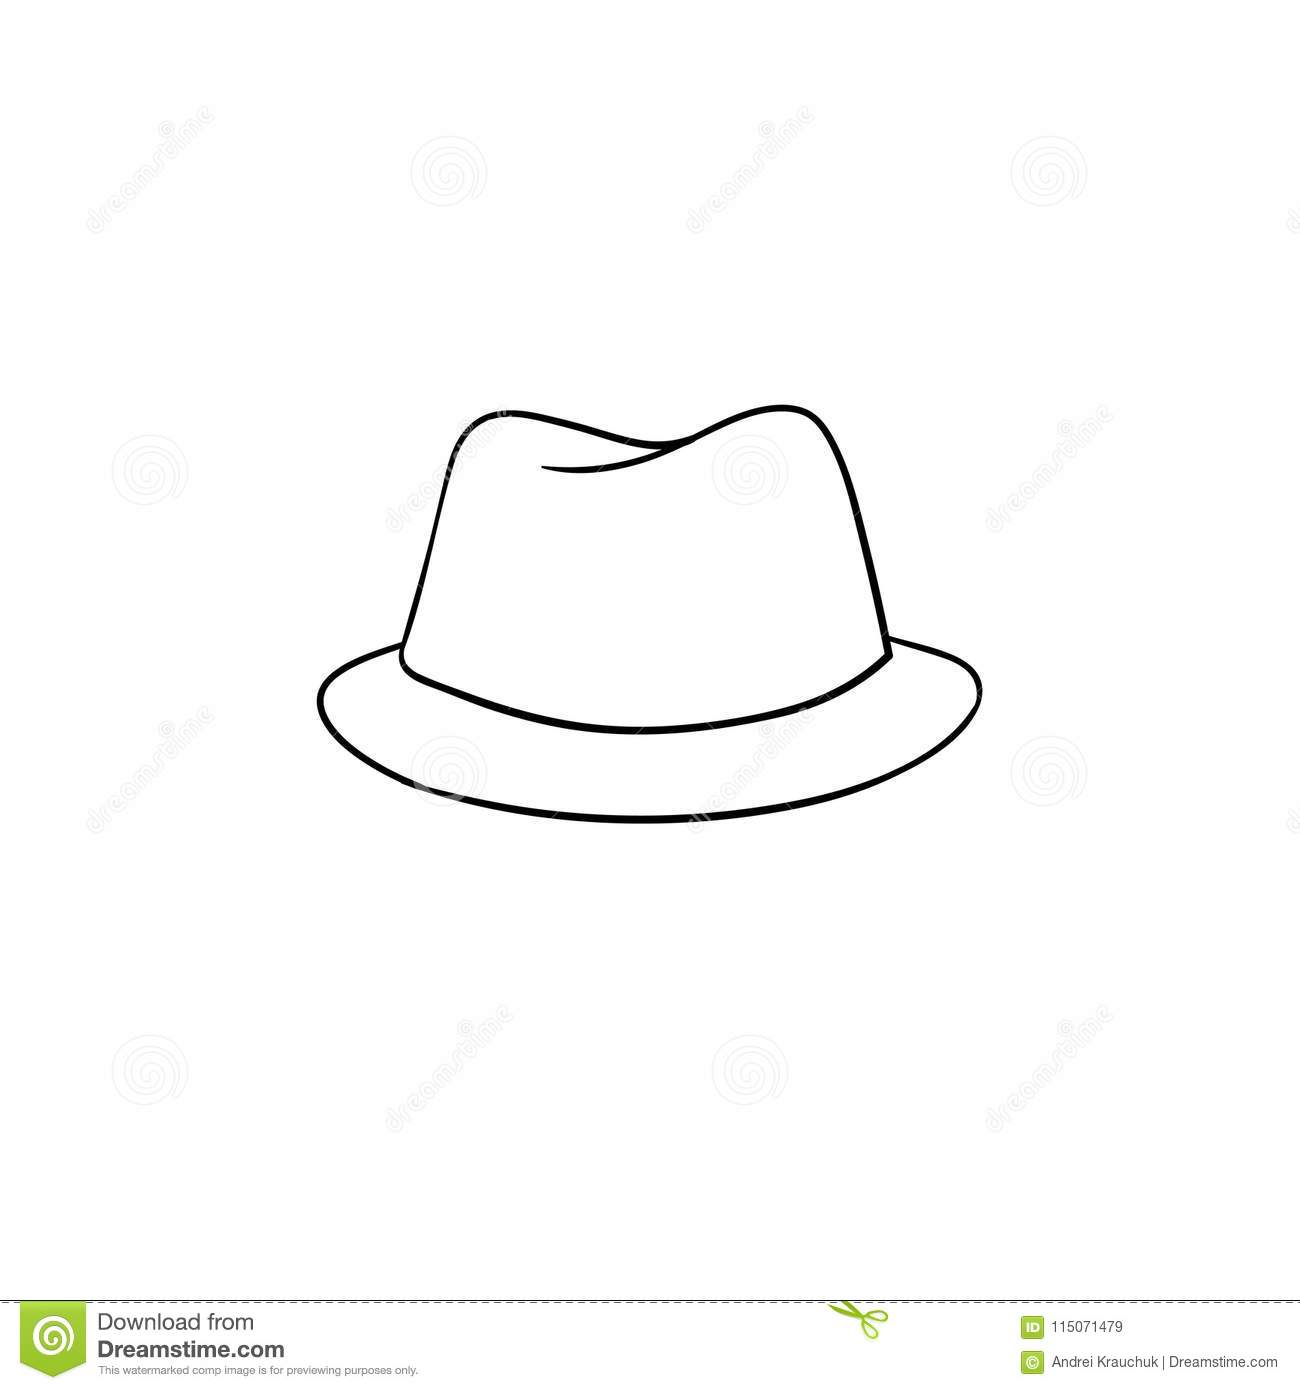 8c5a040deba Fedora hat hand drawn outline doodle icon. Accessory - classic trilby hat  vector sketch illustration for print